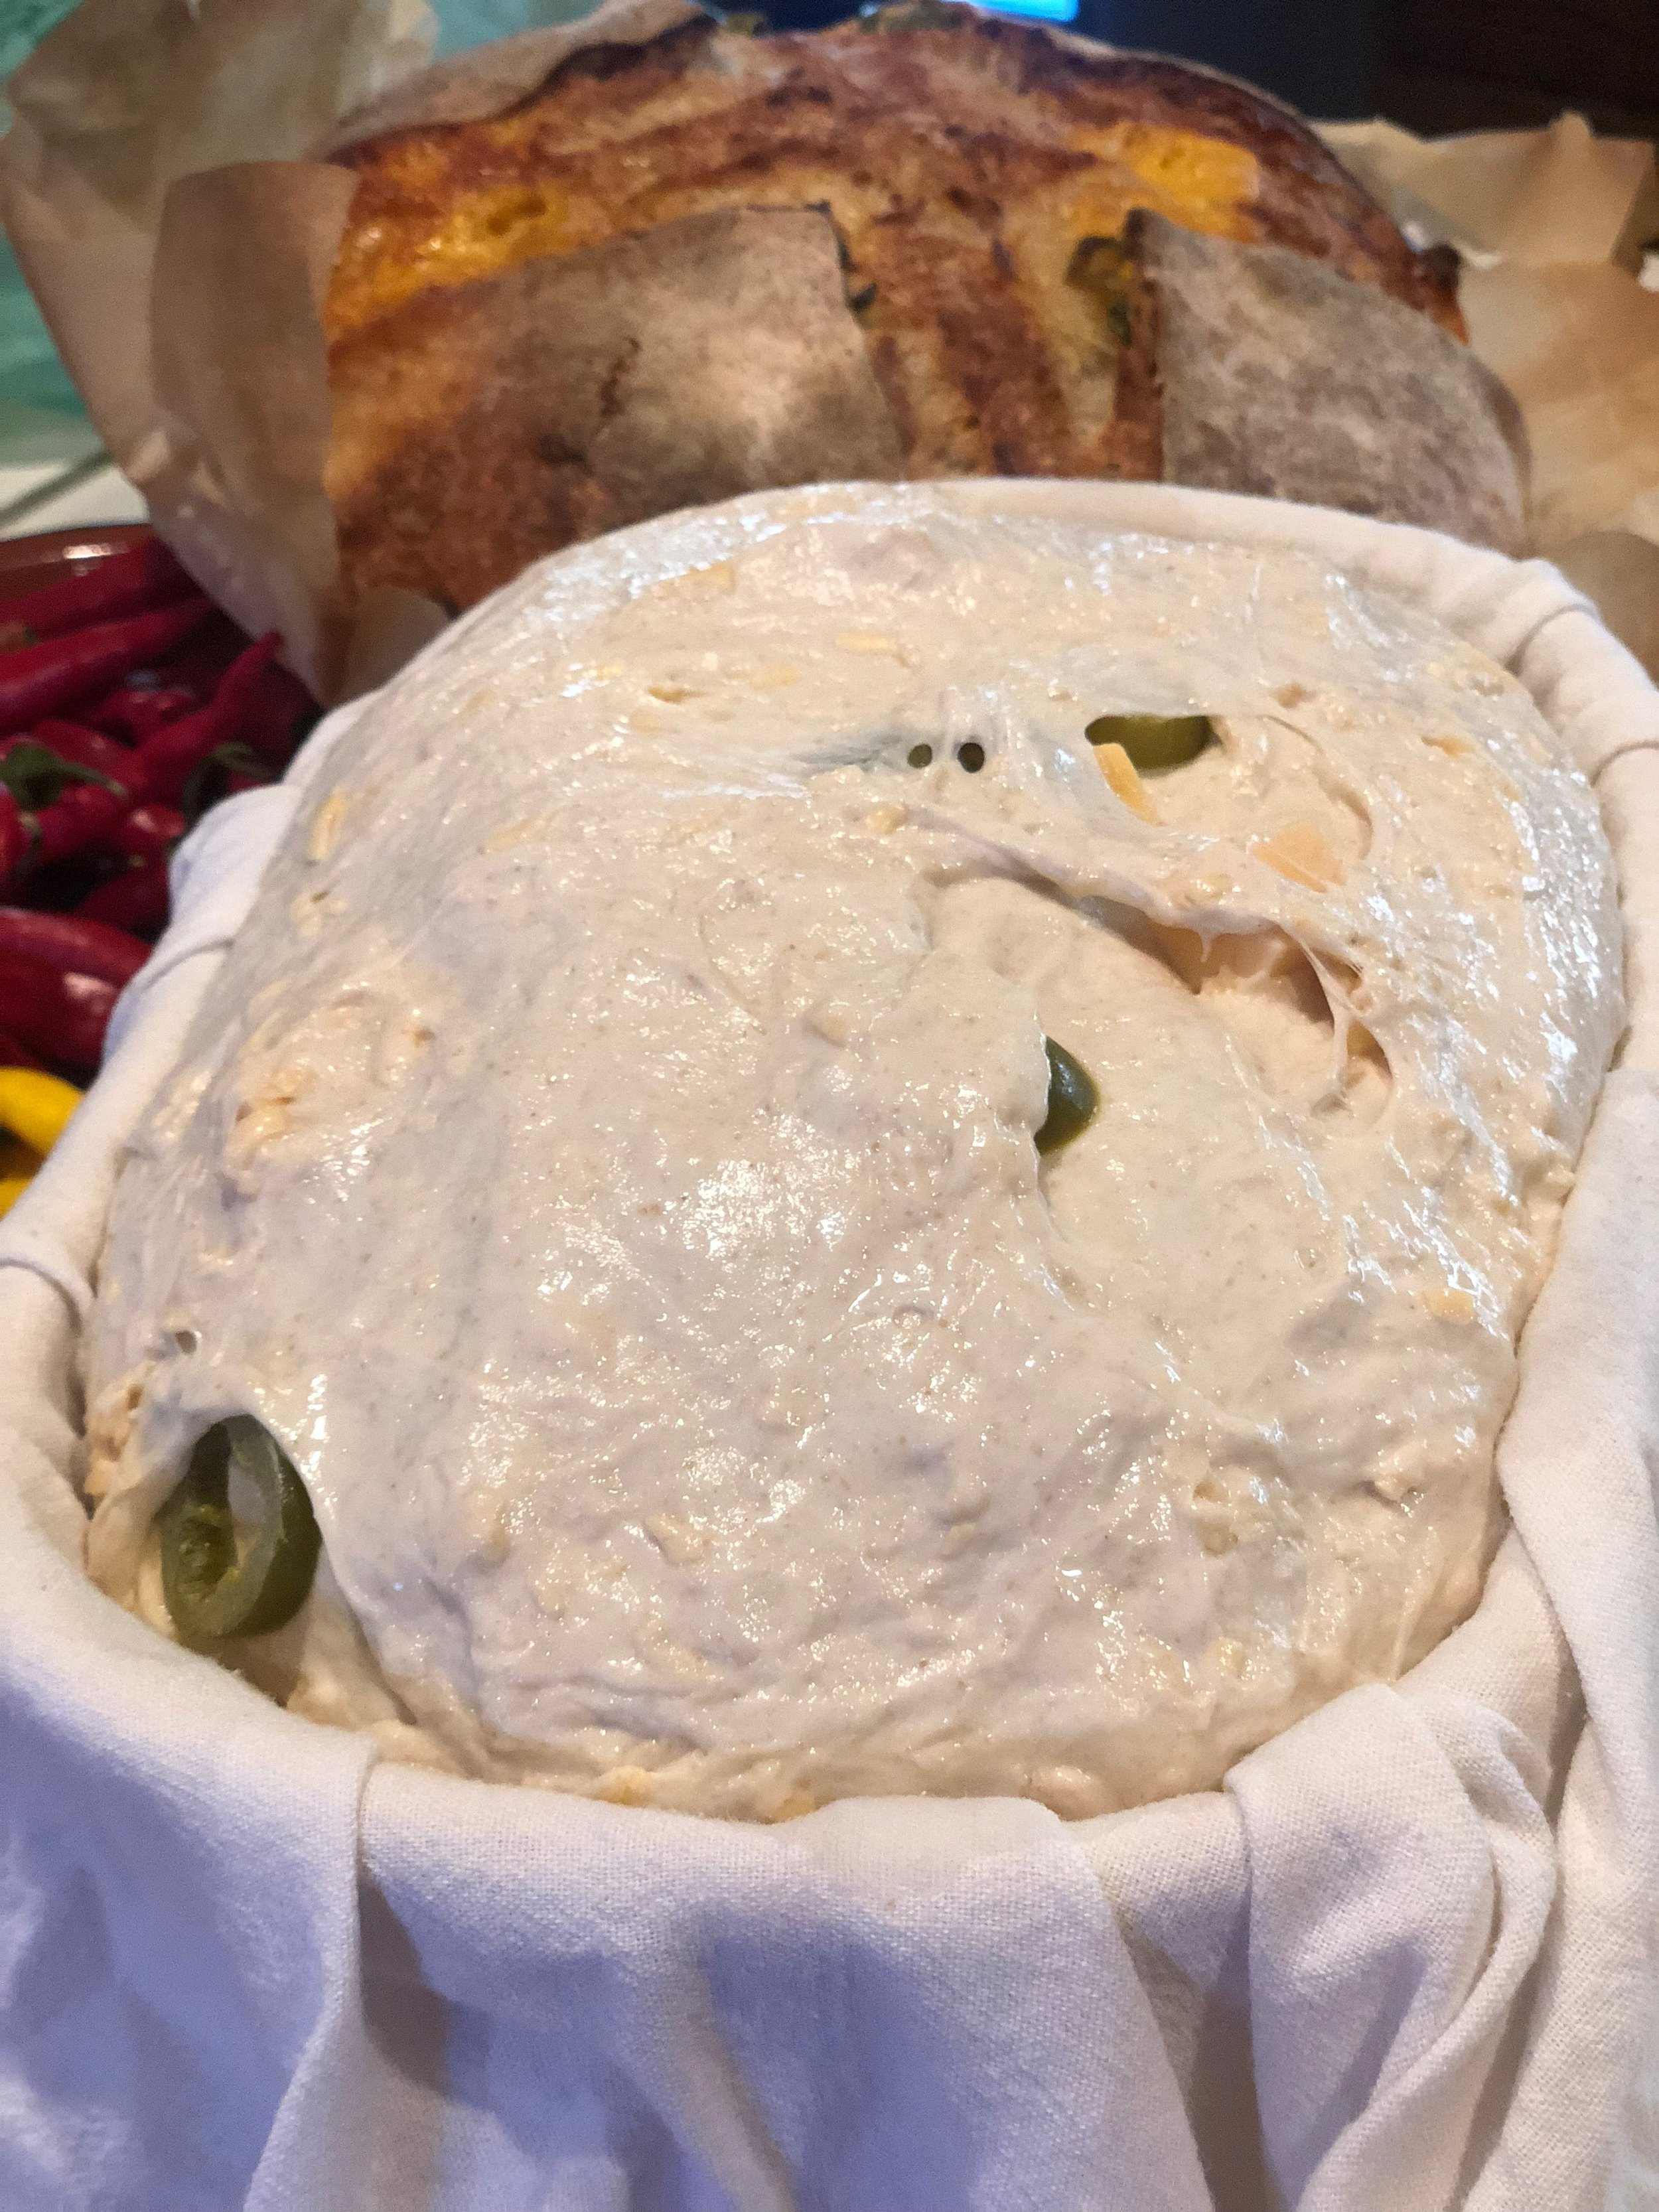 The dough has completely filled the proofing basket and is ready to be baked in the bread cloche and a 500 degree oven.